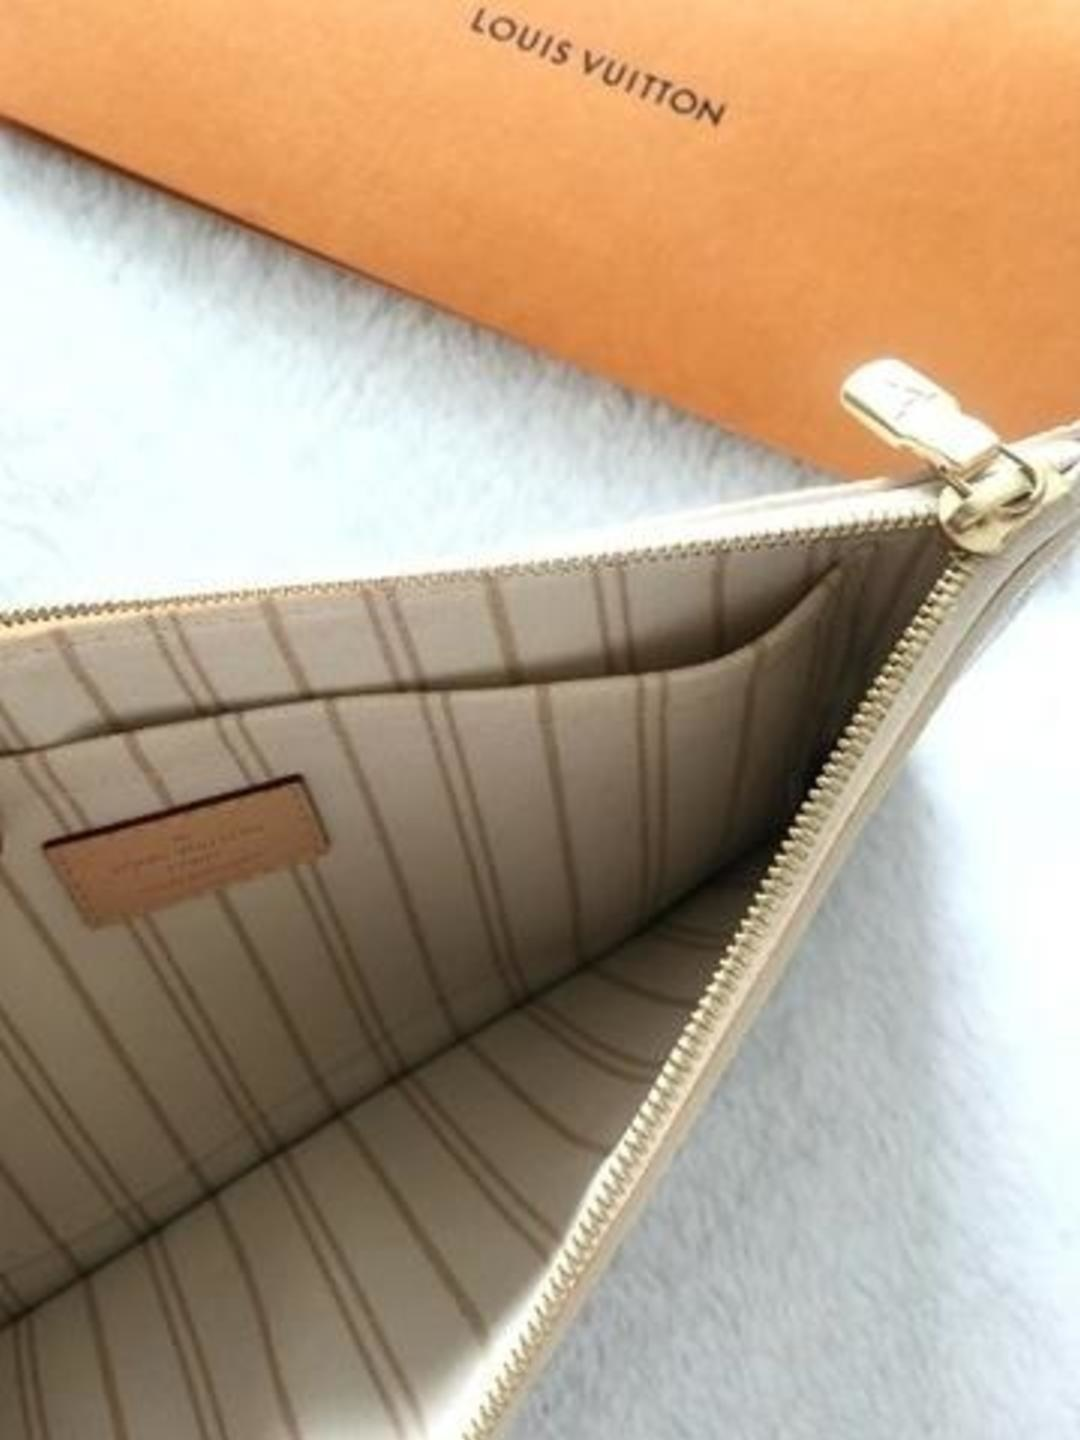 Women's bags & purses - LOUIS VUITTON photo 3